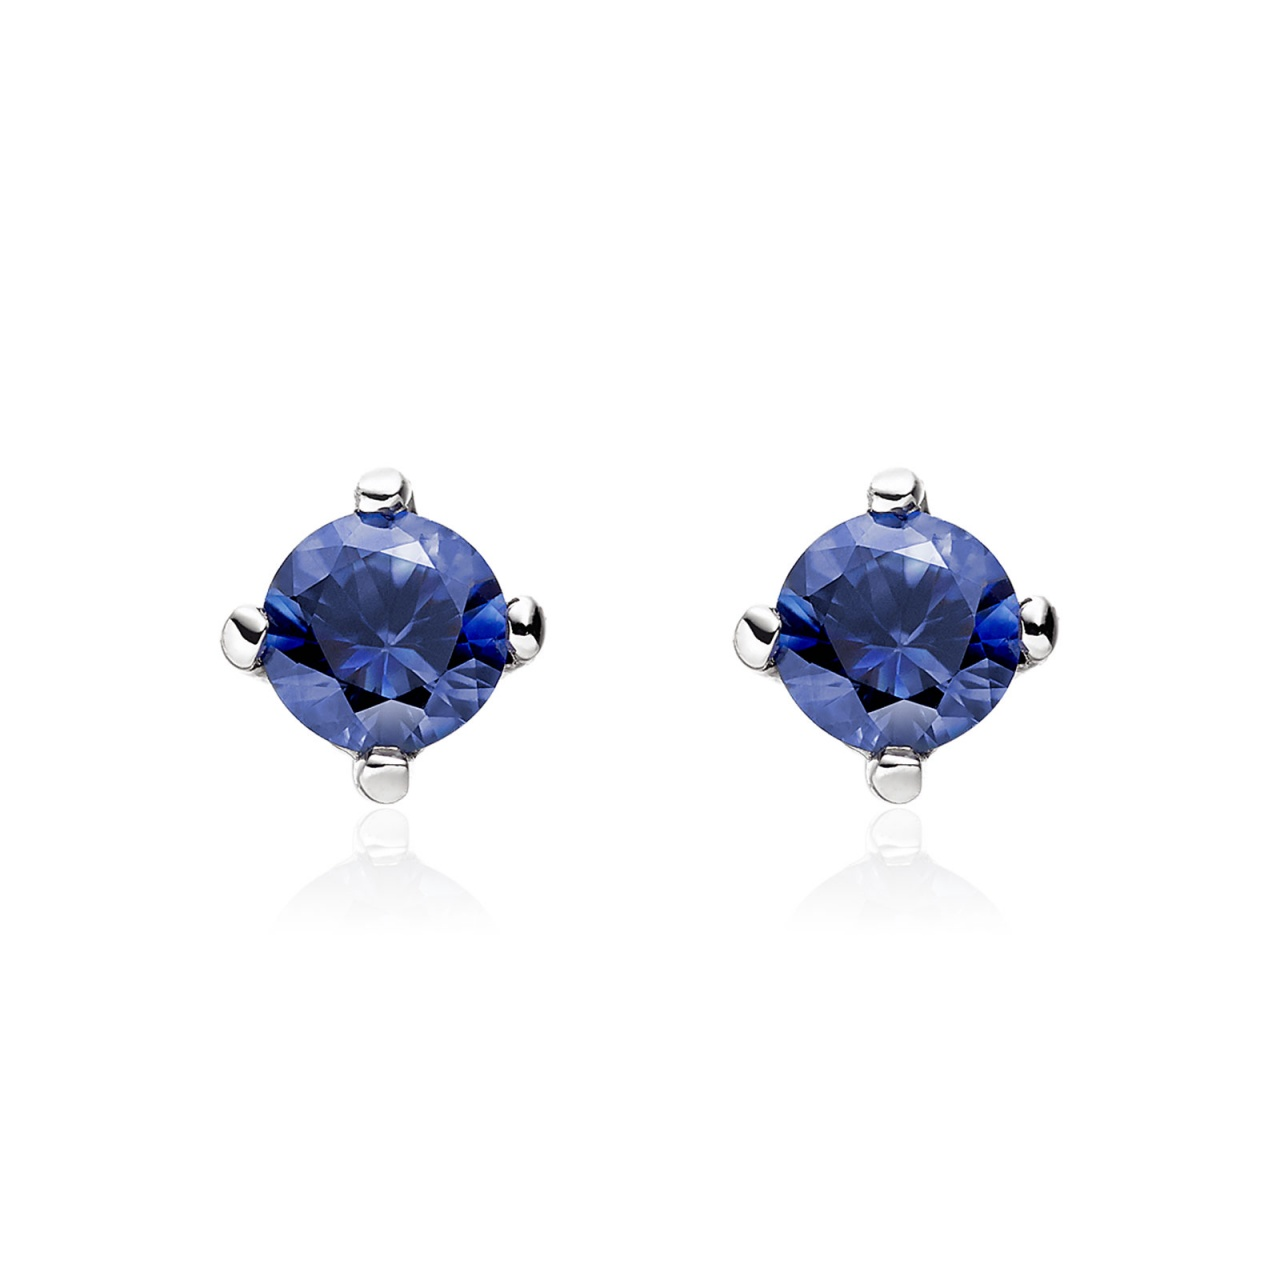 Blue Sapphire Stud Earrings in 18 Carat White Gold-1